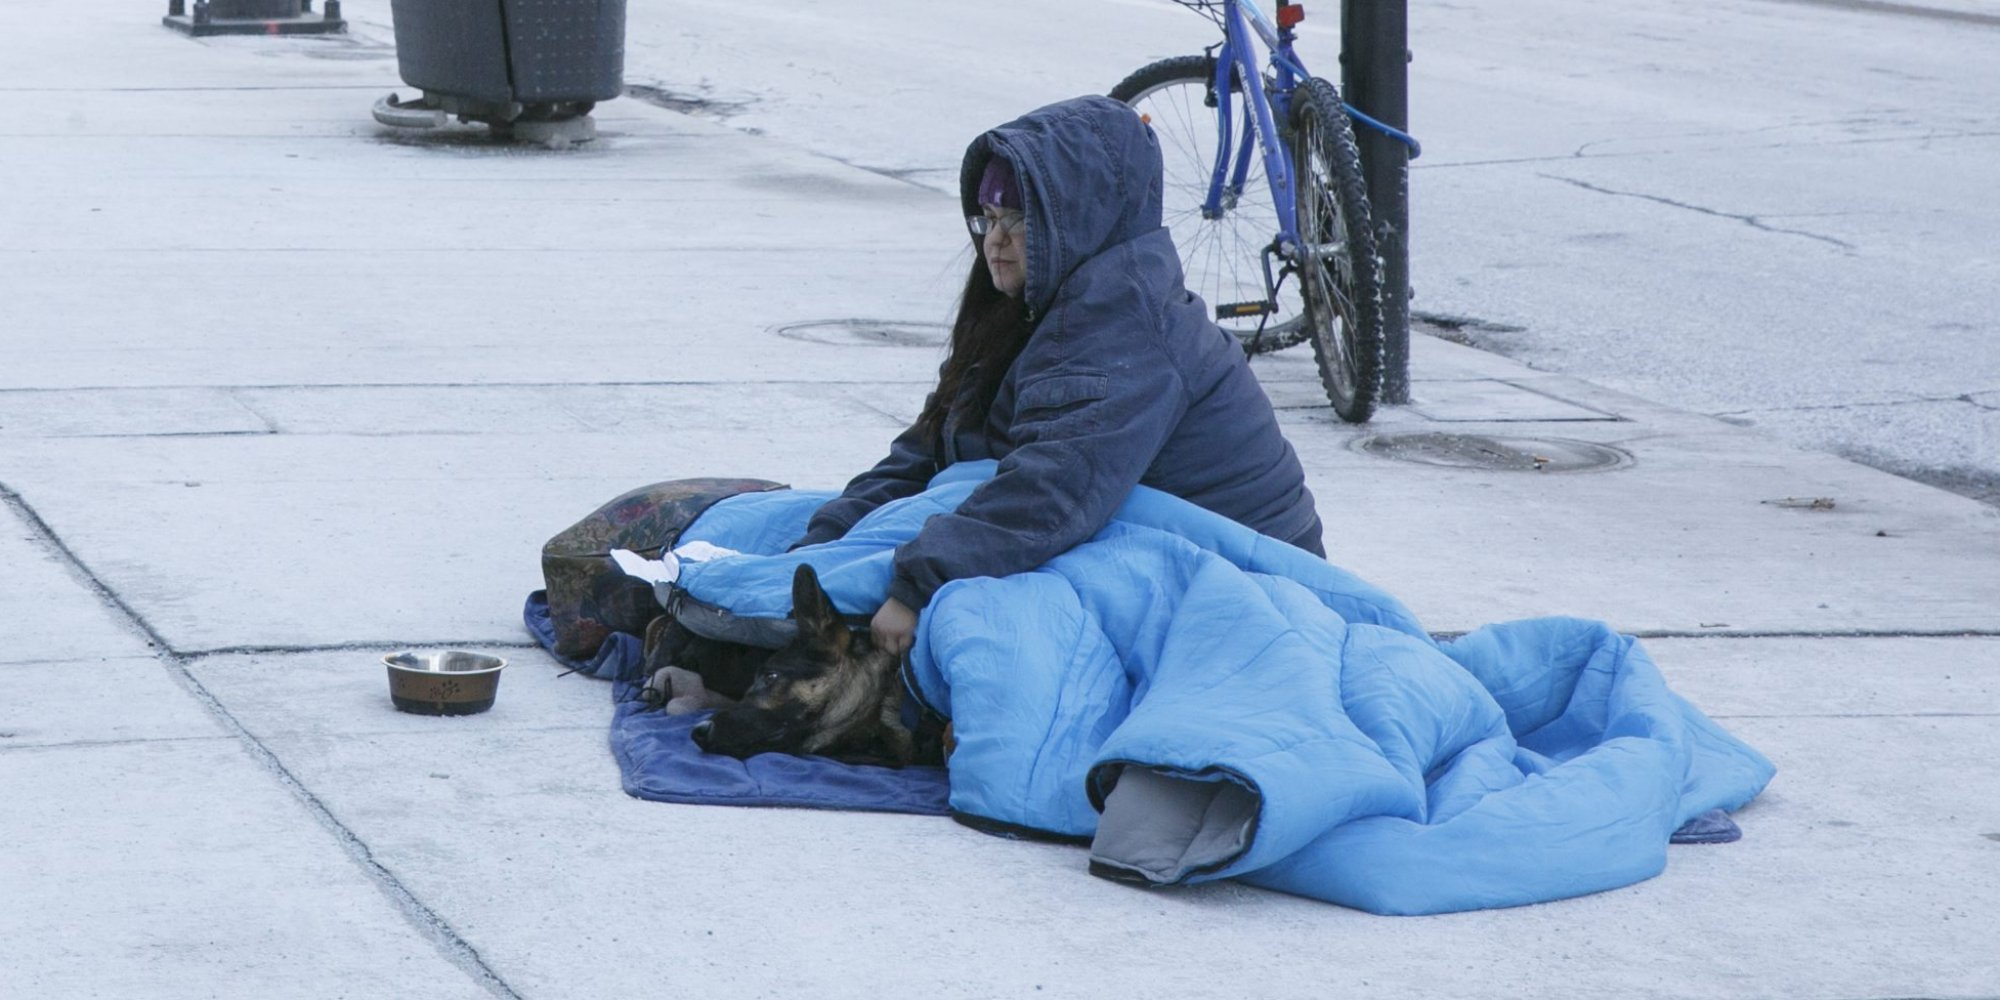 Thumbnail for the post titled: 6 Vital Survival Tips we can Learn from the Homeless